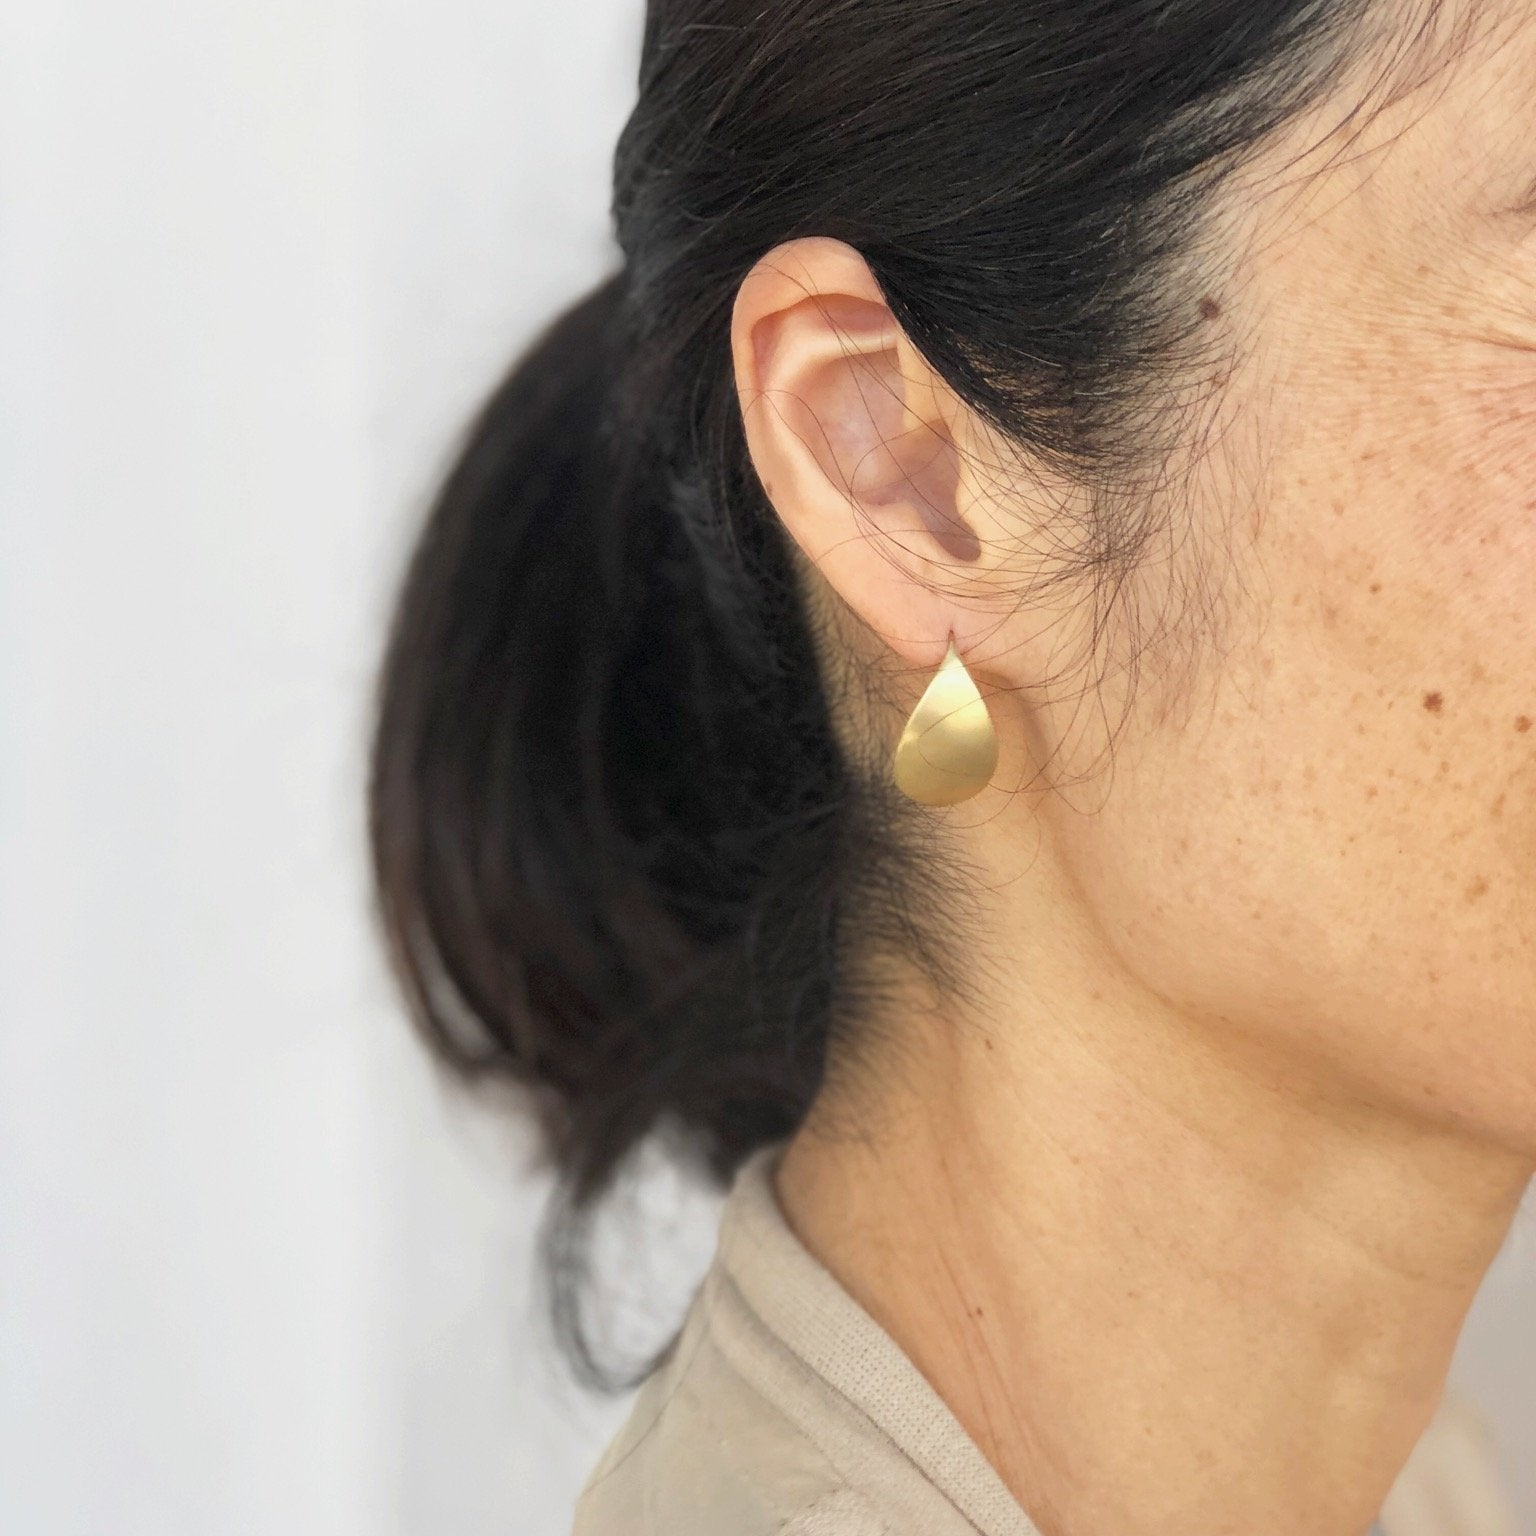 NOKI Earring (M) by Black Barc - tortoise general store